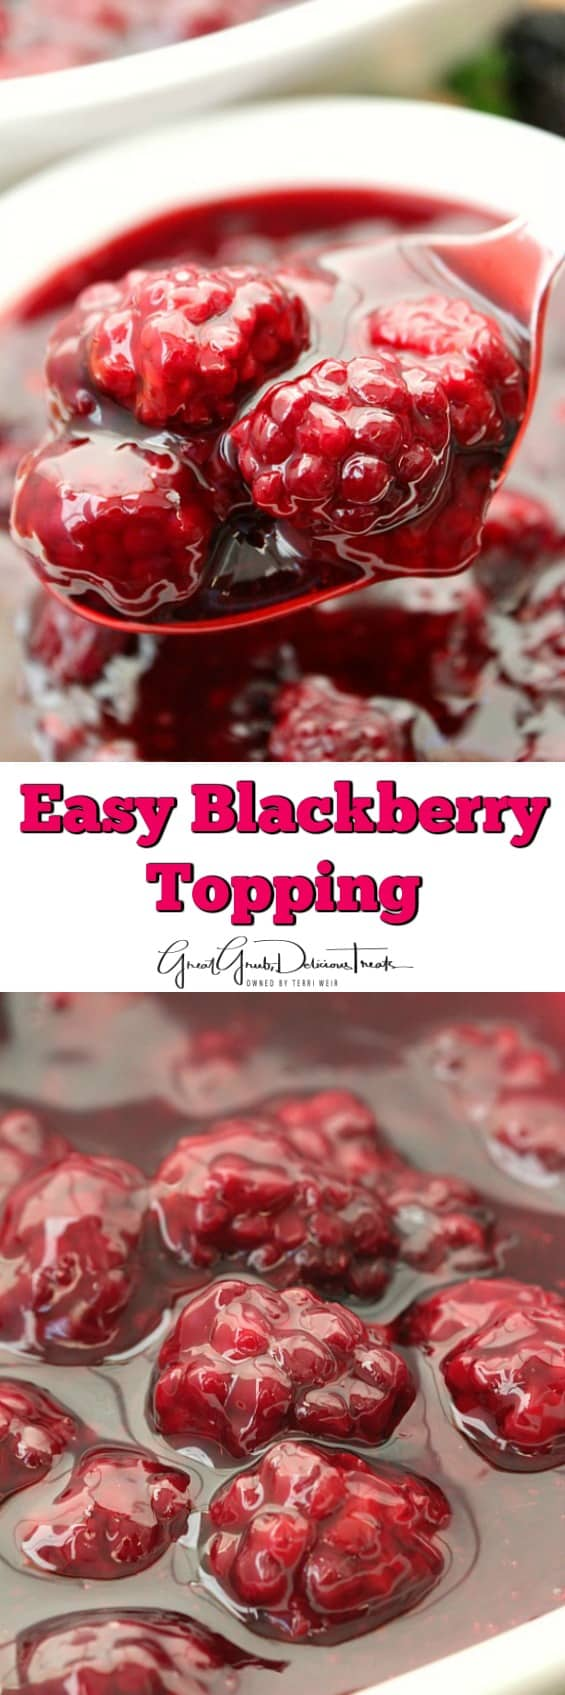 Easy Blackberry Topping